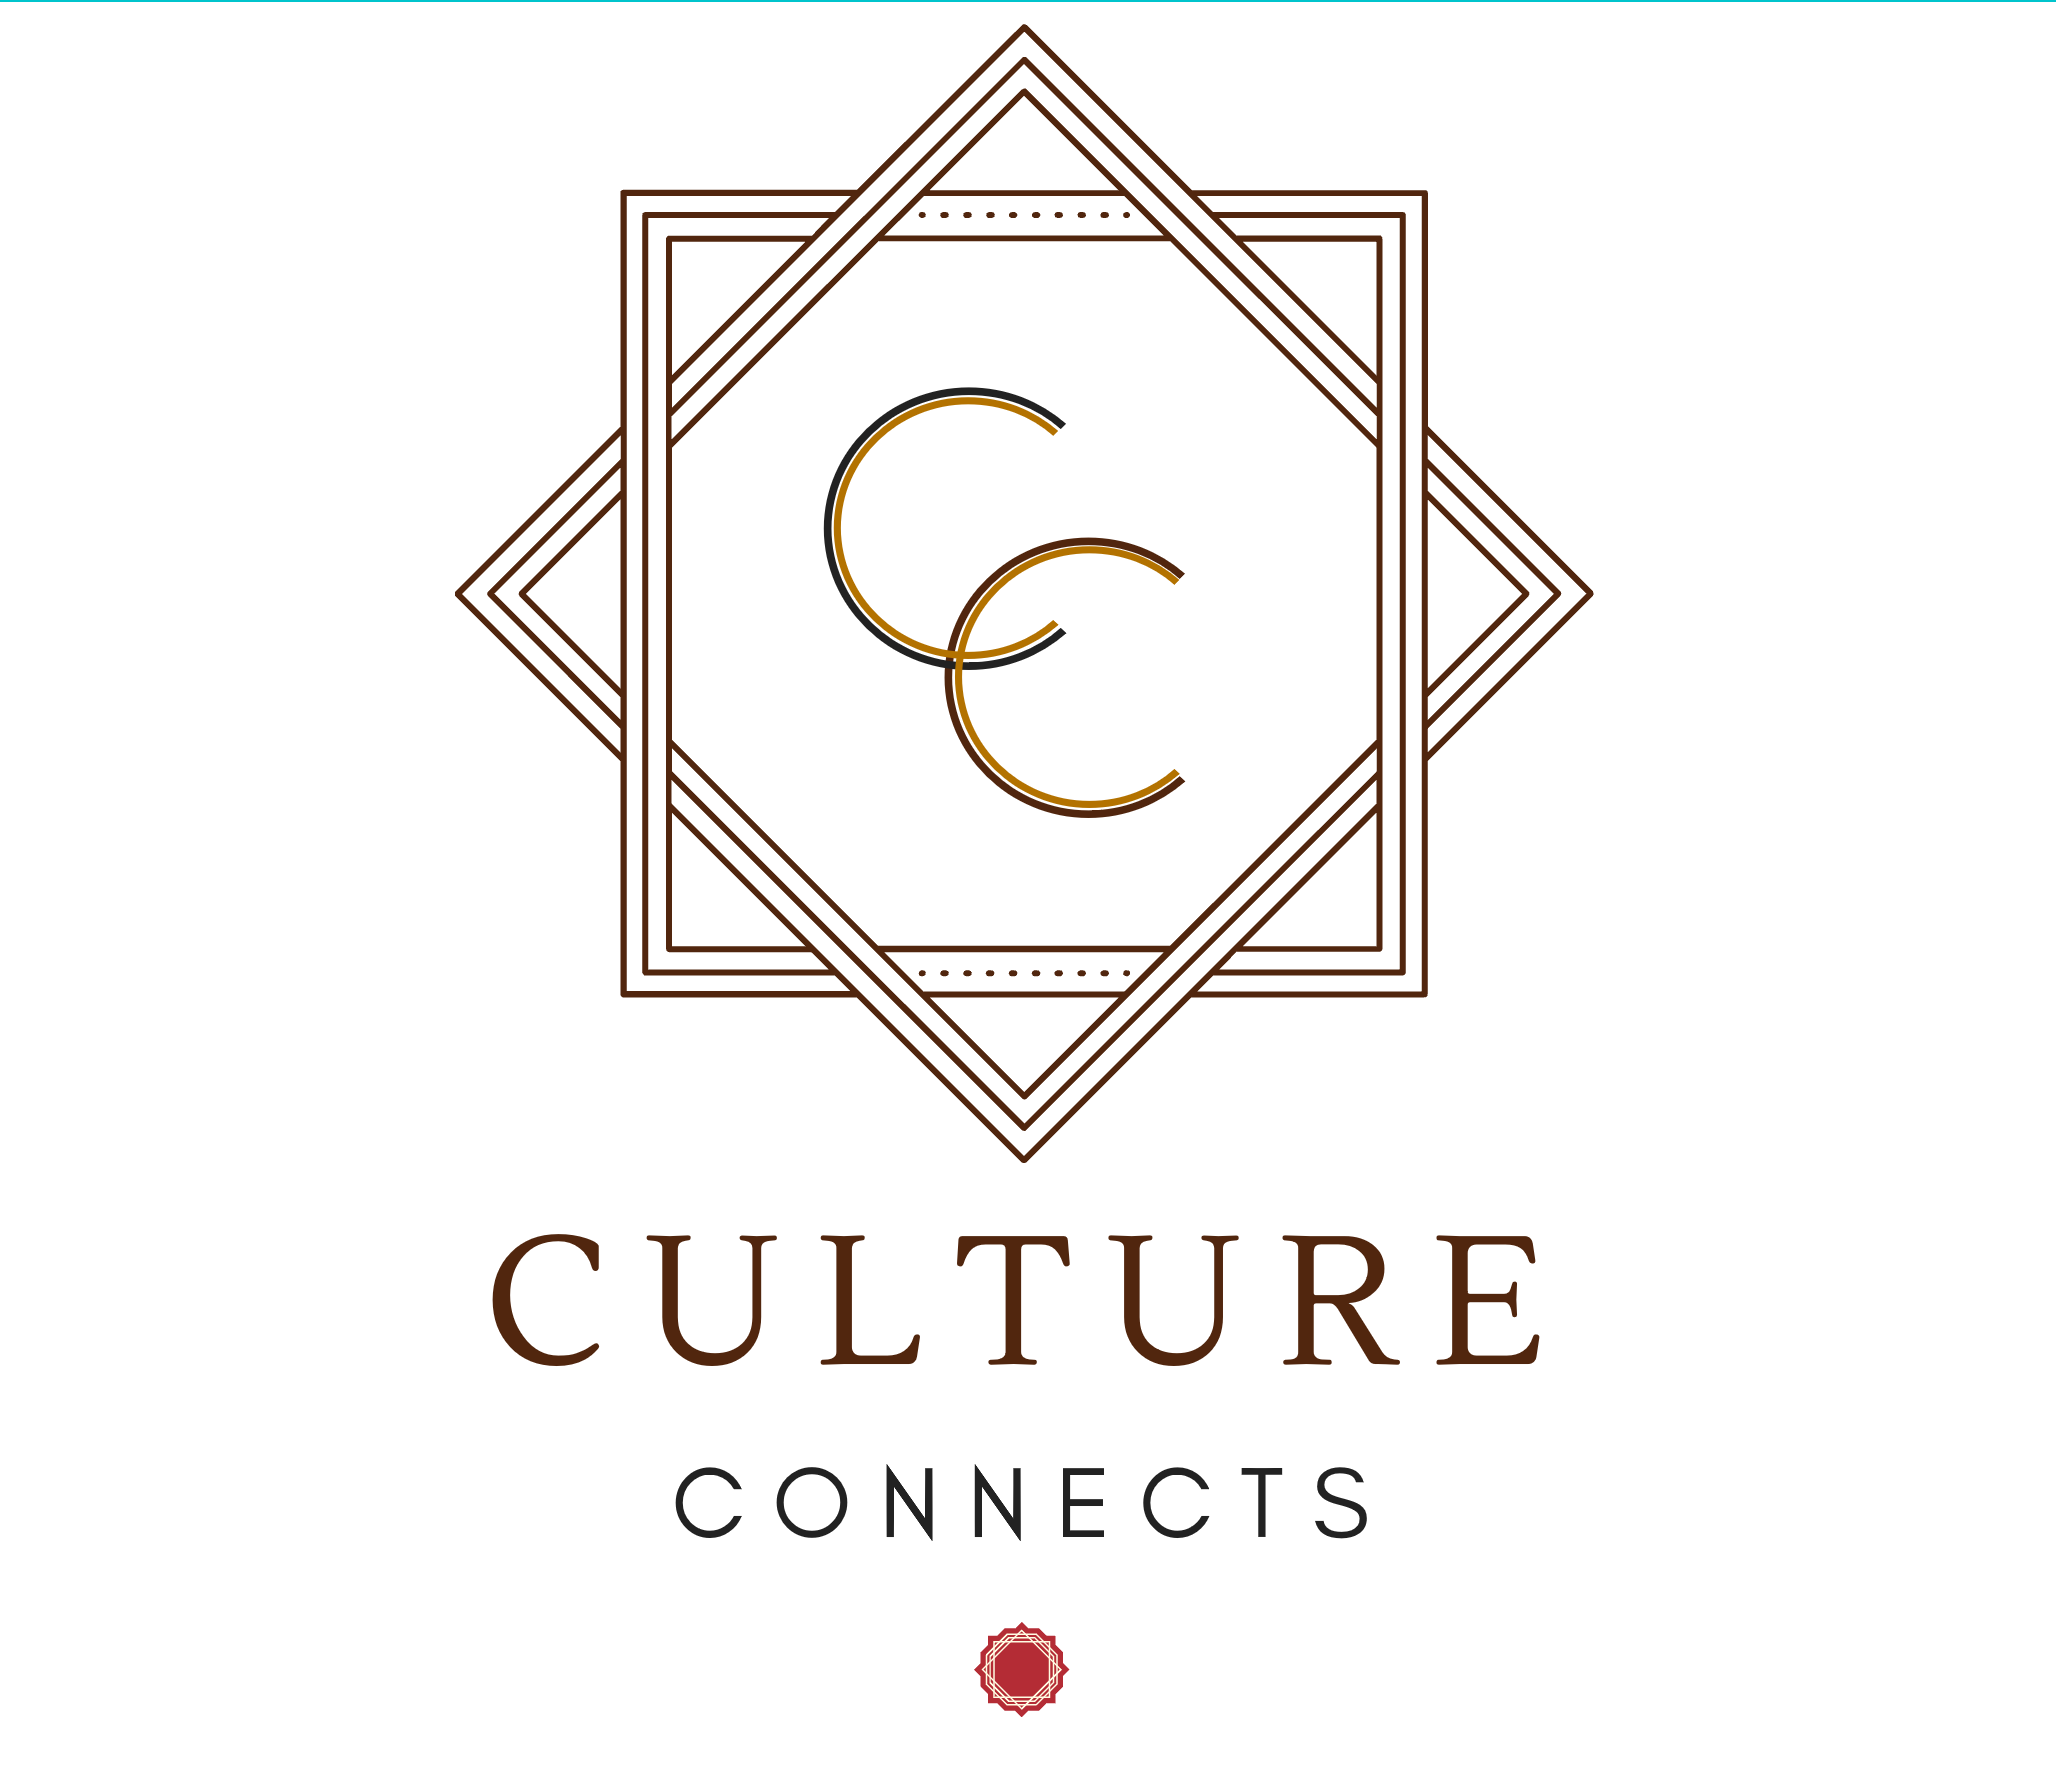 CULTURE CONNECTS